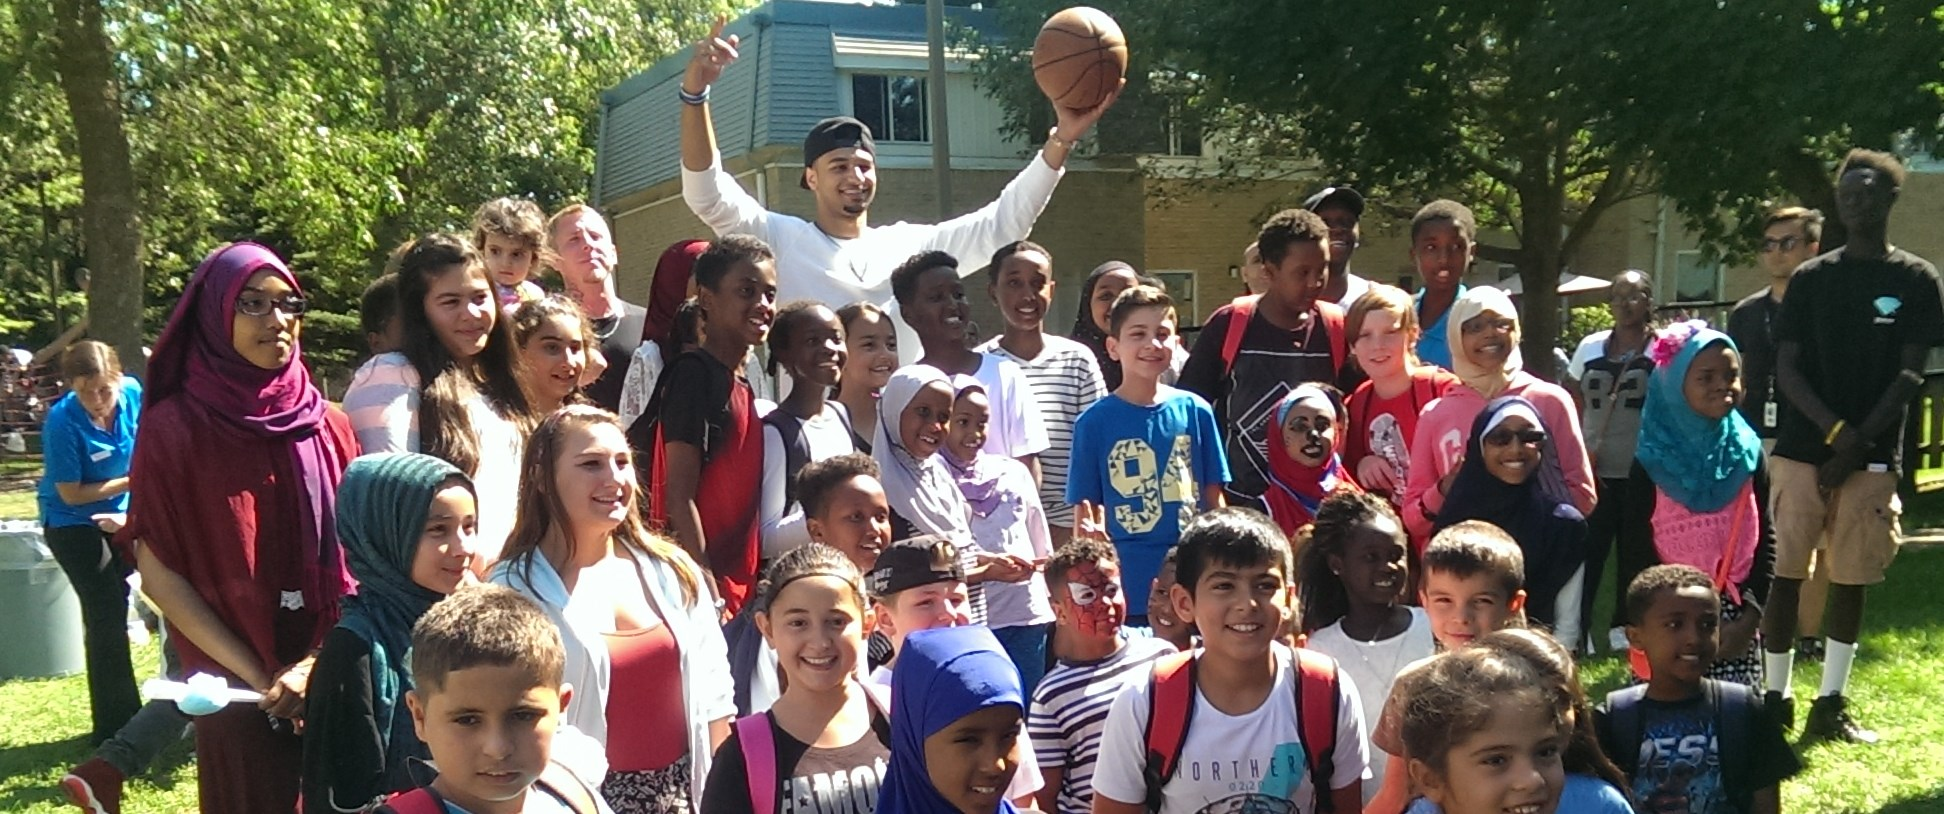 Image: Children gathered around NBA player Jamal Murray at barbecue in community housing